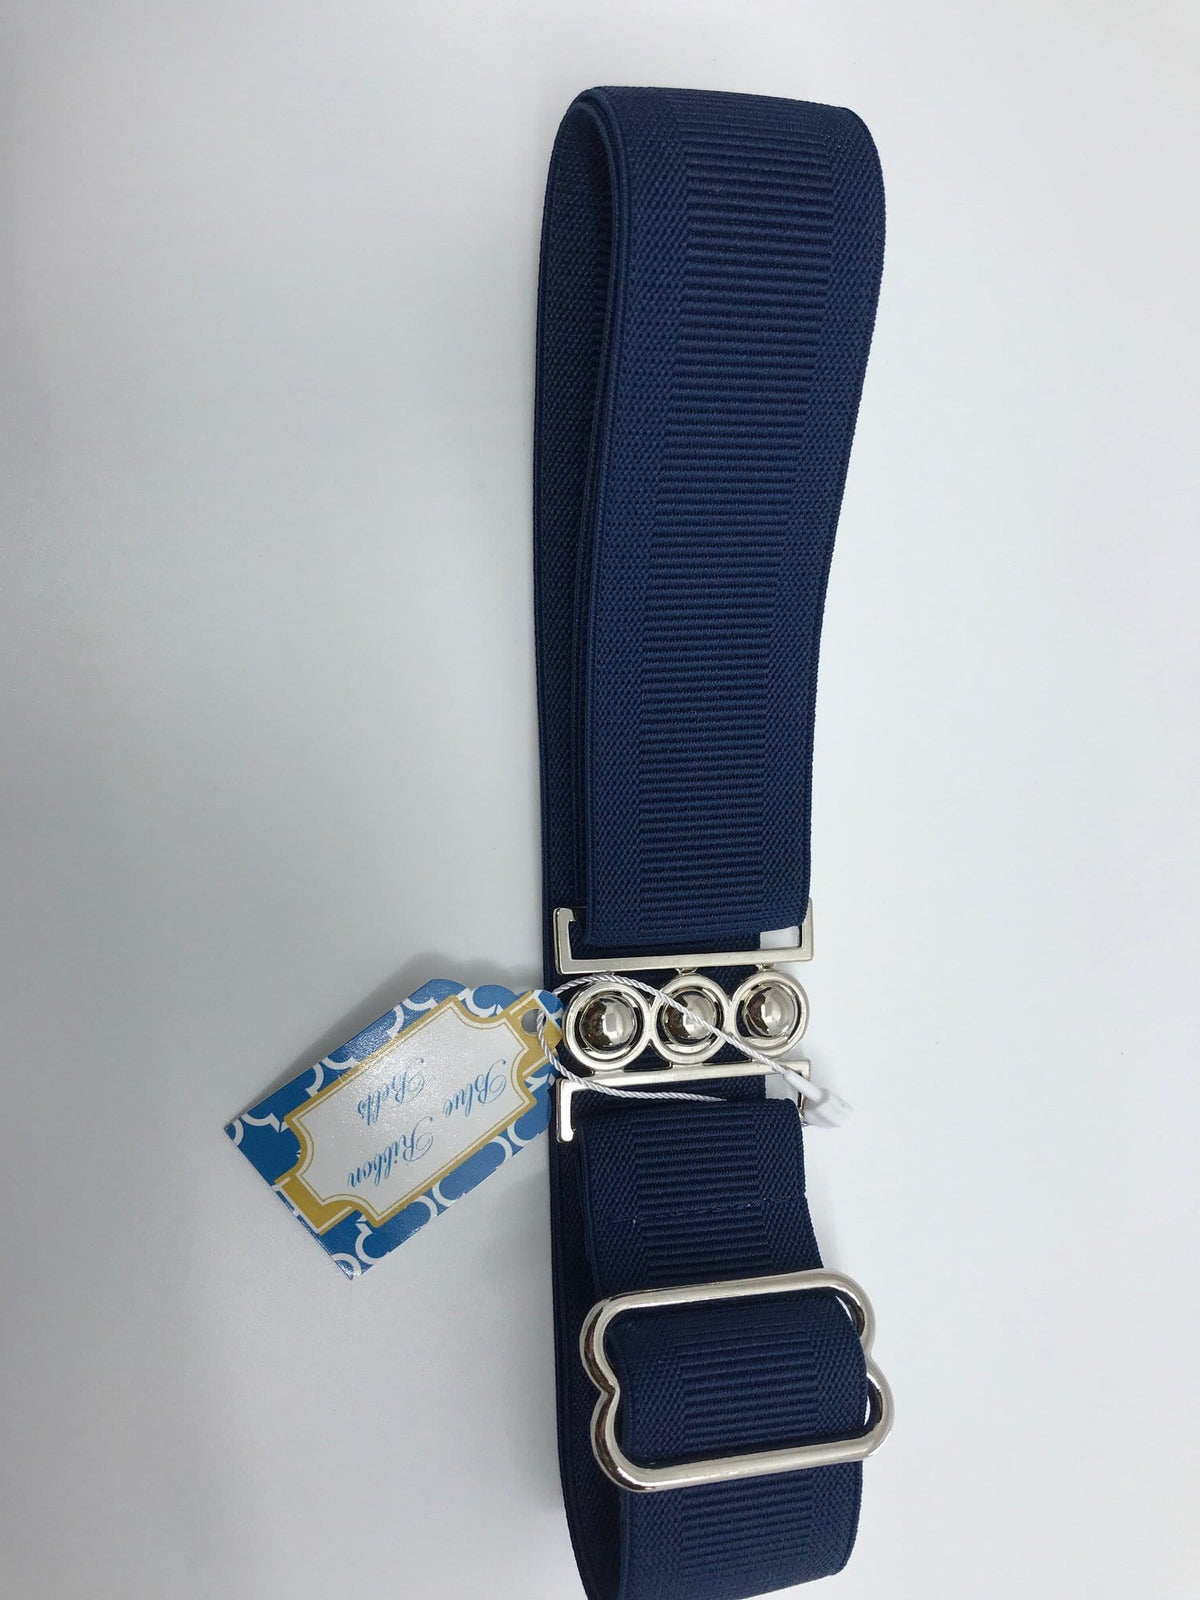 "Blue Ribbon Belts Belt Navy Blue Ribbon Belts 1.5"" equestrian team apparel online tack store mobile tack store custom farm apparel custom show stable clothing equestrian lifestyle horse show clothing riding clothes horses equestrian tack store"